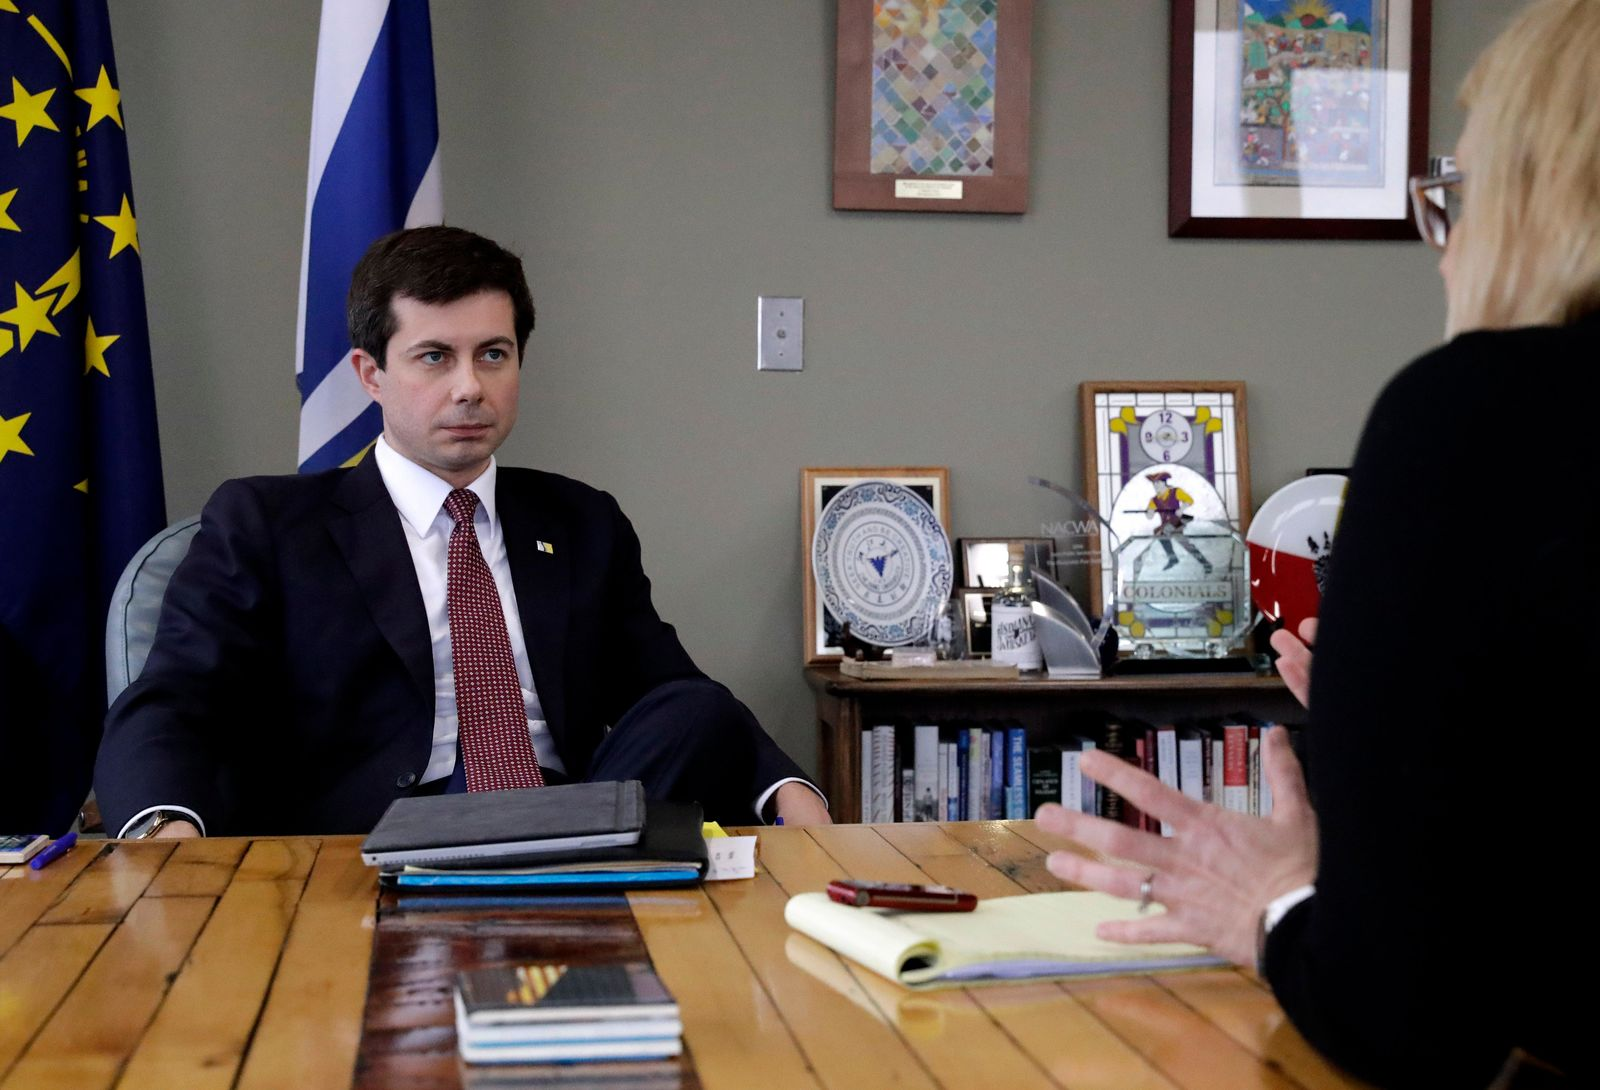 Mayor Pete Buttigieg listens to an AP reporter at his office in South Bend, Ind., Thursday, Jan. 10, 2019. (AP Photo/Nam Y. Huh)